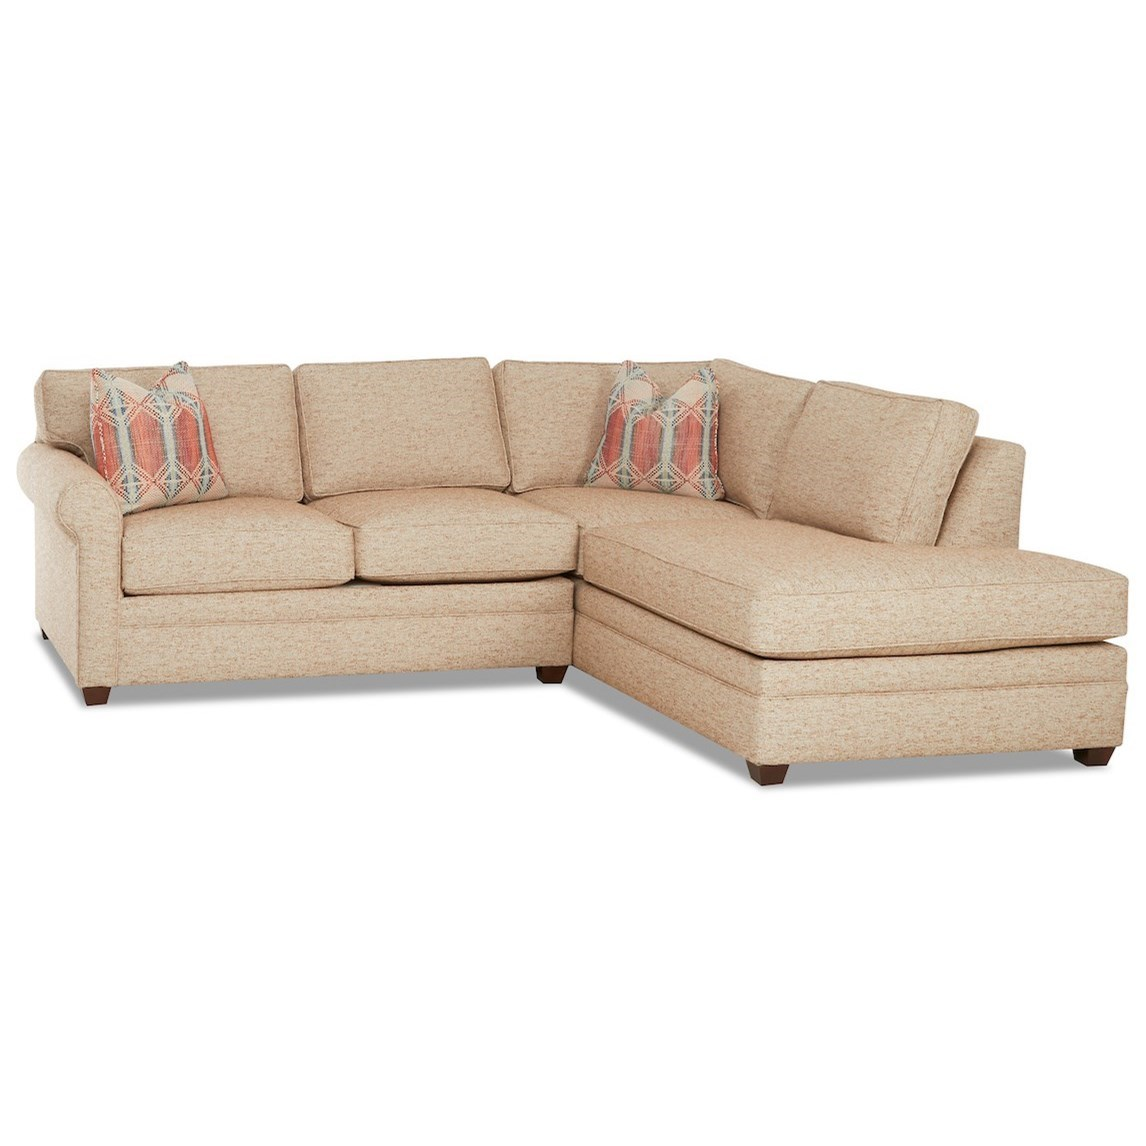 Living Your Way 2-Piece Sectional Sofa w/ RAF Sofa Chaise by Klaussner at Johnny Janosik